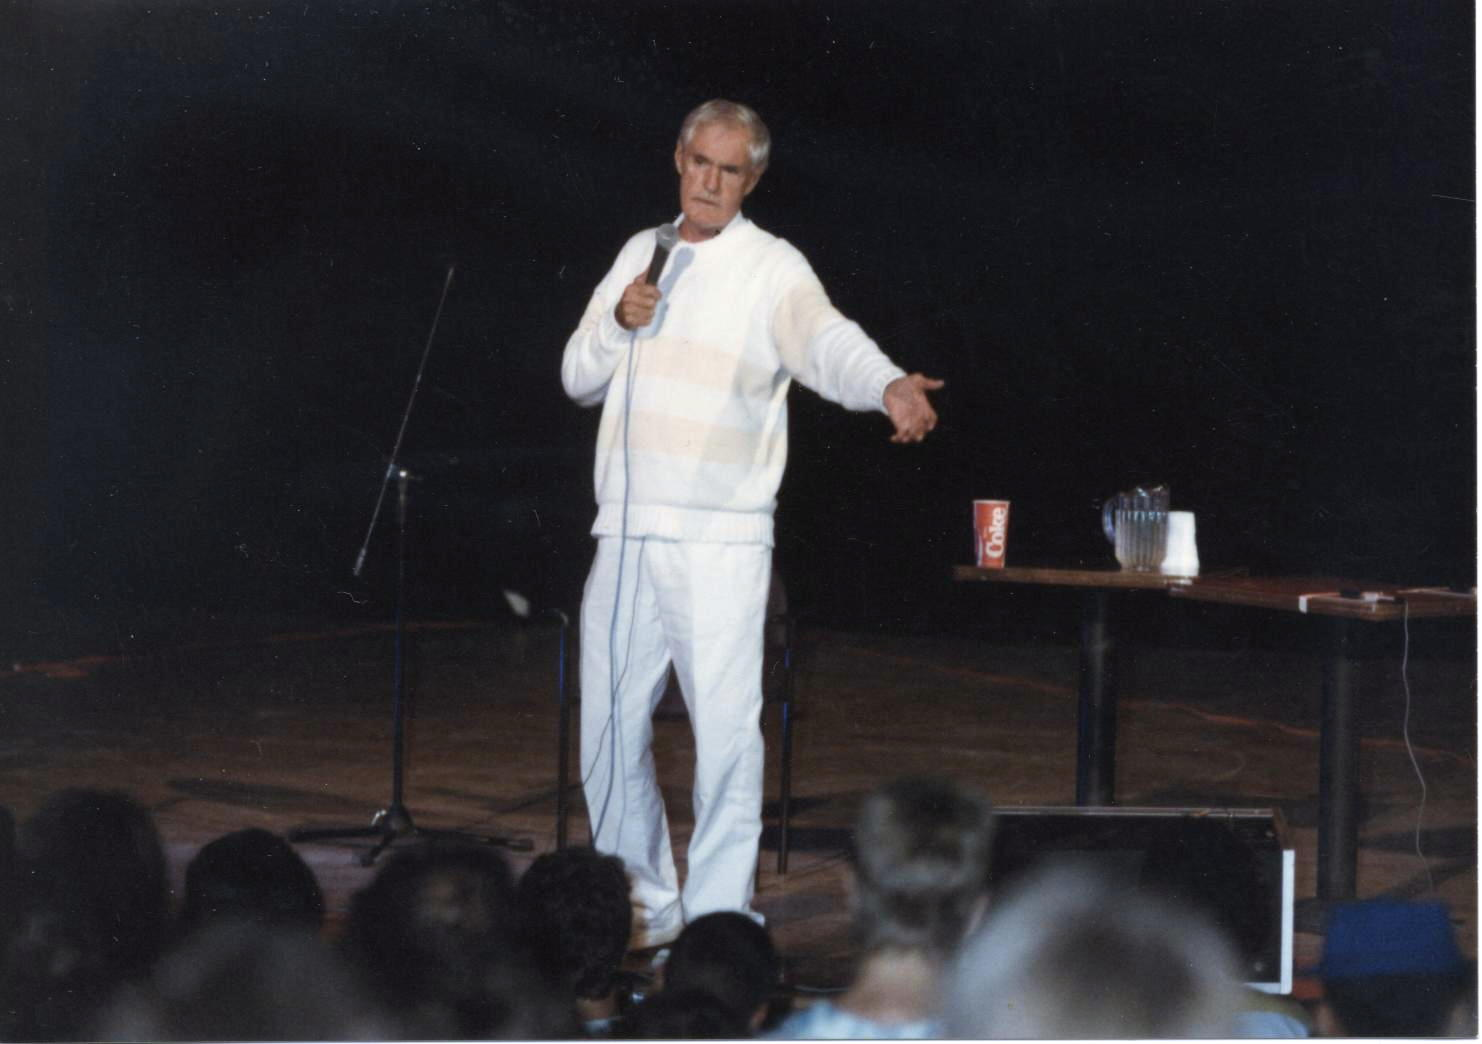 [Dr. Timothy Leary, Liberty Hall, Lawrence, Kansas. Dr. Timothy's performance at the River City Union, September 12, 1987. Photograph by Doug L. Miller: used with permission.]